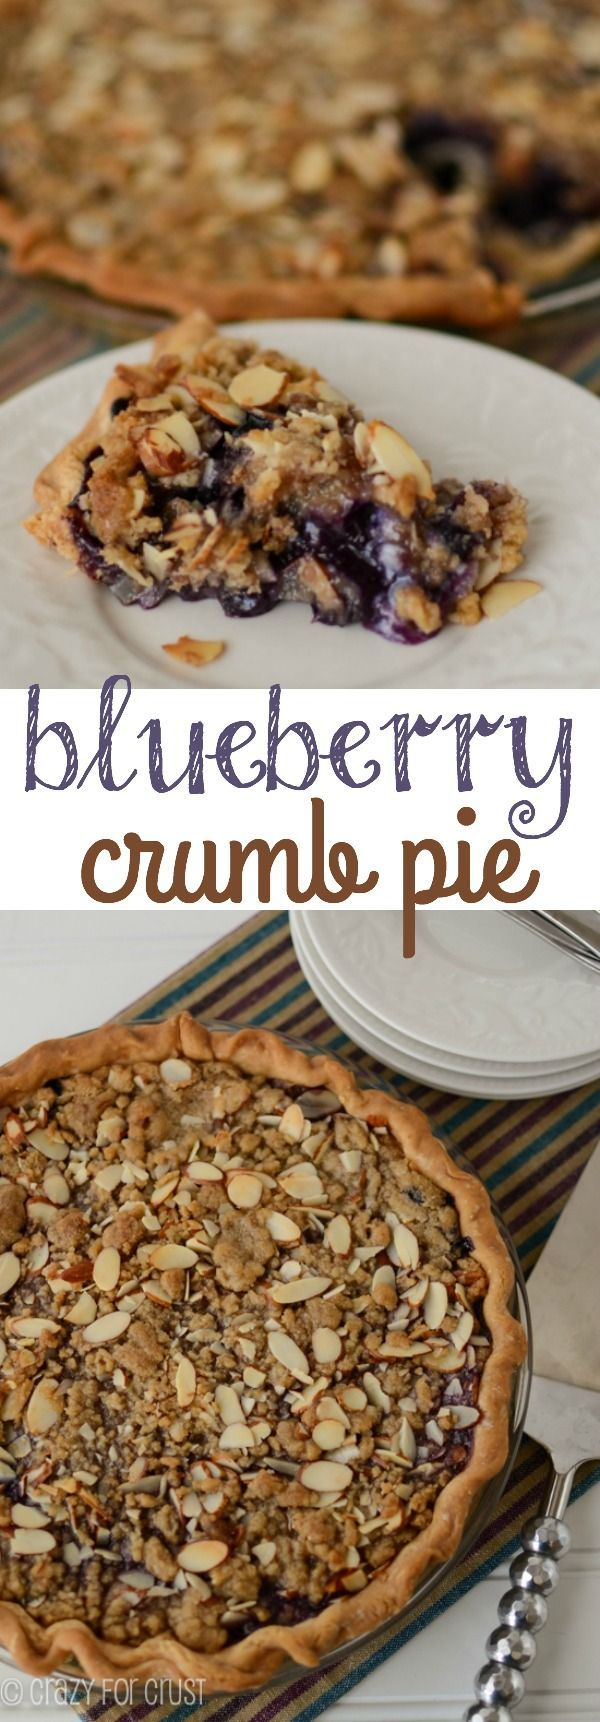 Blueberry Crumb Pie with a juicy blueberry filling and an almond crumble top